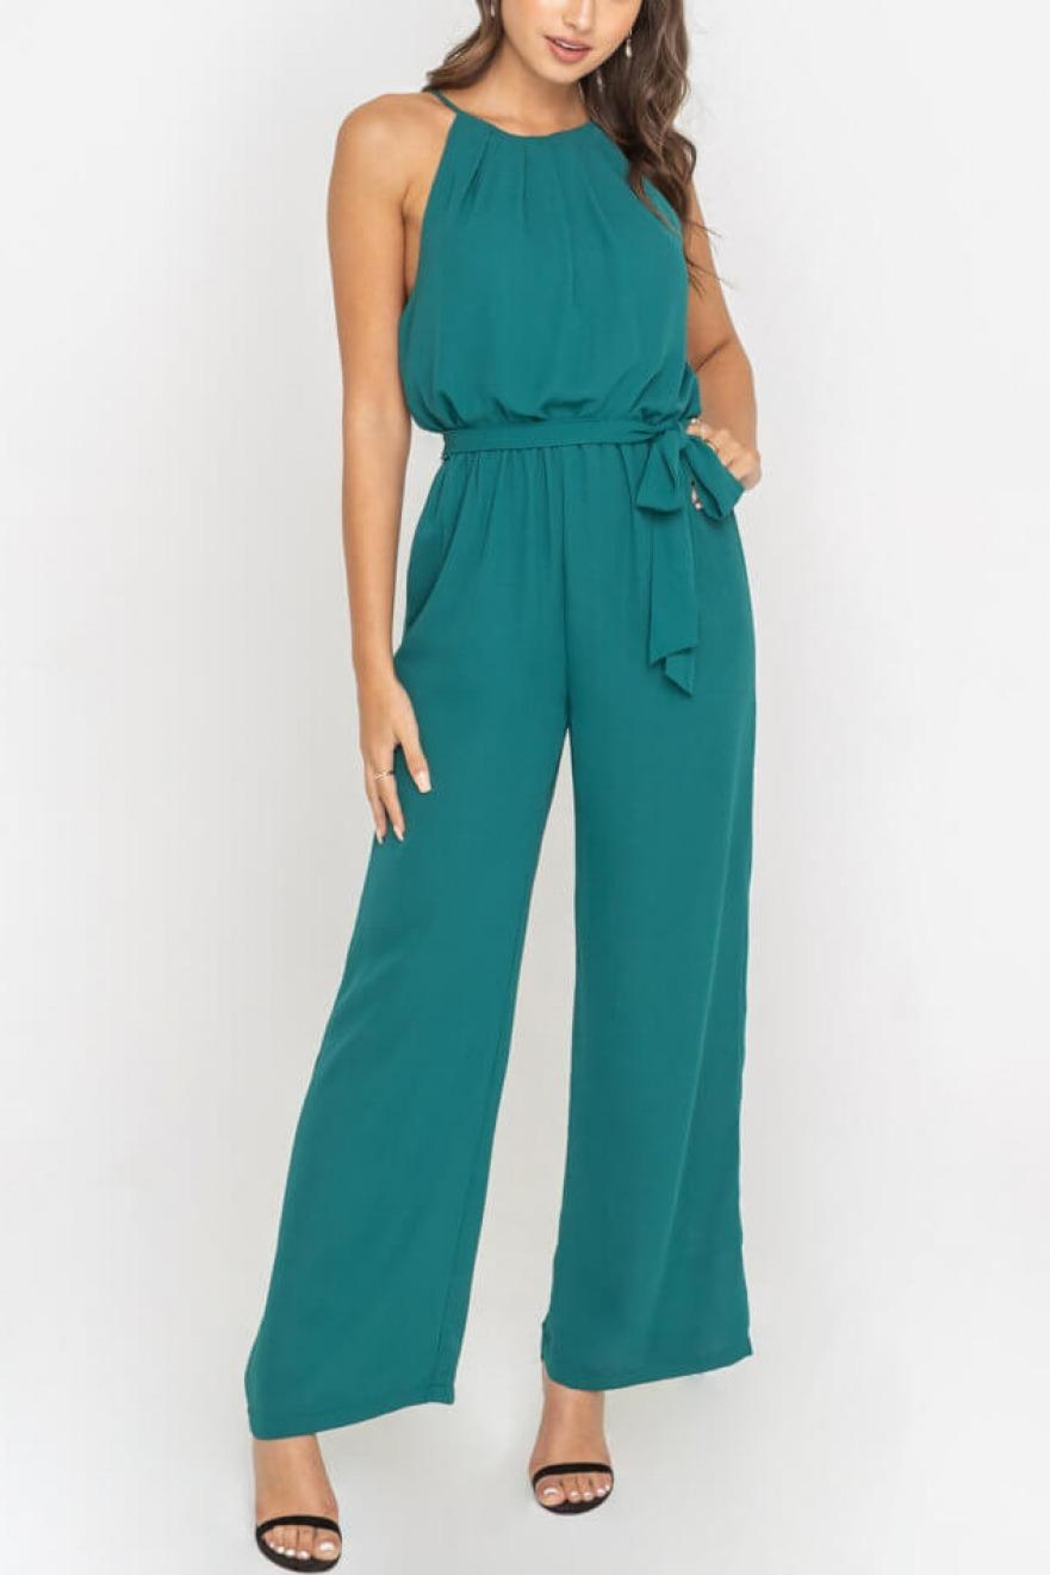 Lush Clothing  Teal Halter Jumpsuit - Front Full Image